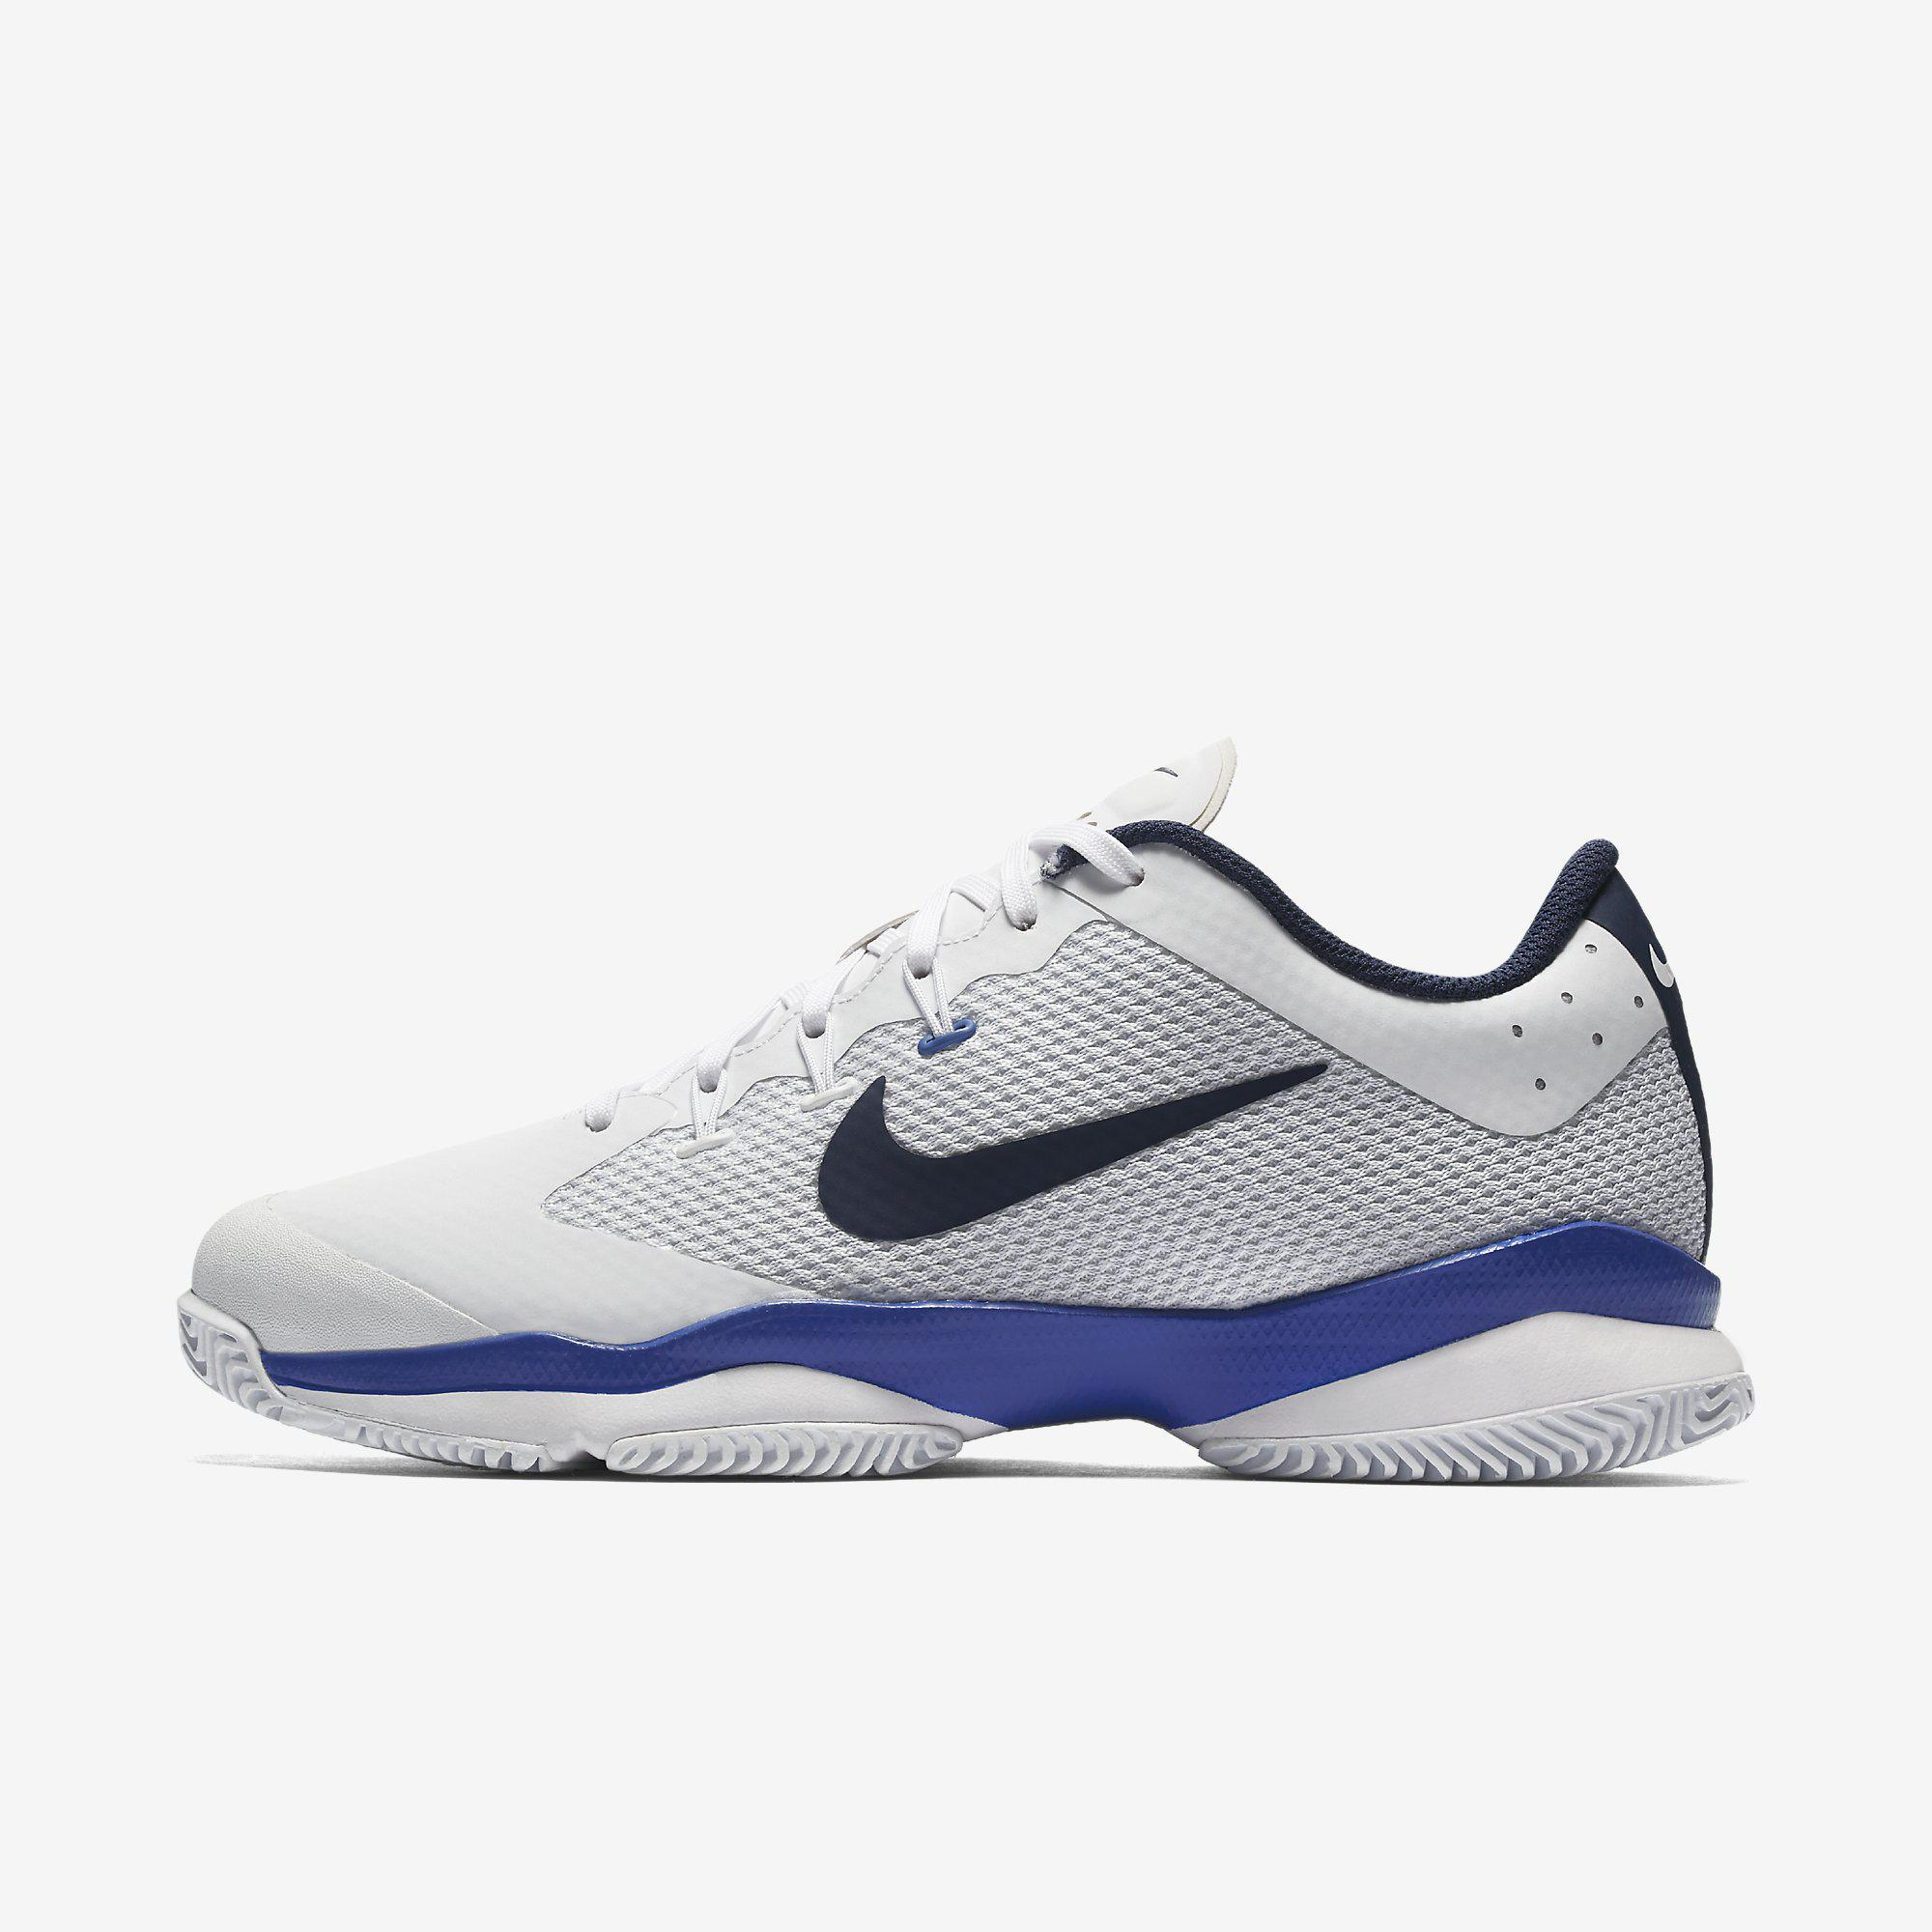 Nike Tennis Shoes Sale Australia